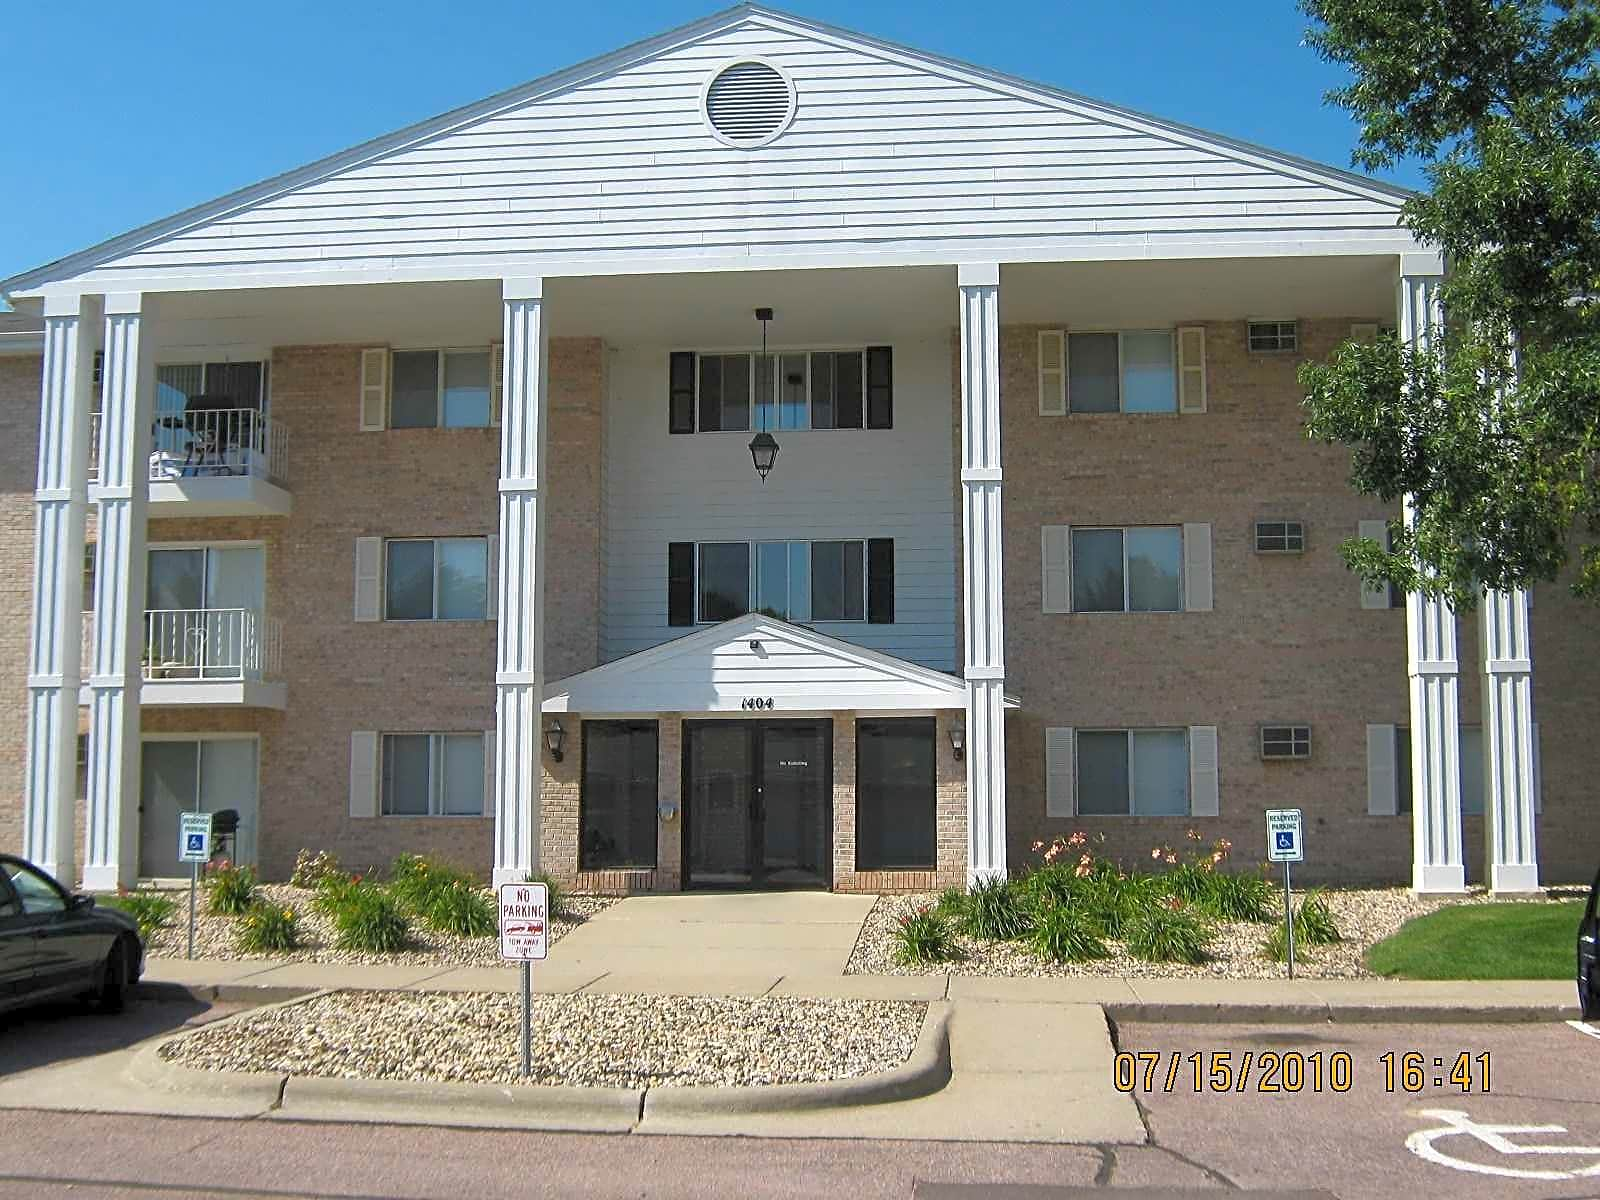 Photo: Sioux Falls Apartment for Rent - $655.00 / month; 1 Bd & 1 Ba